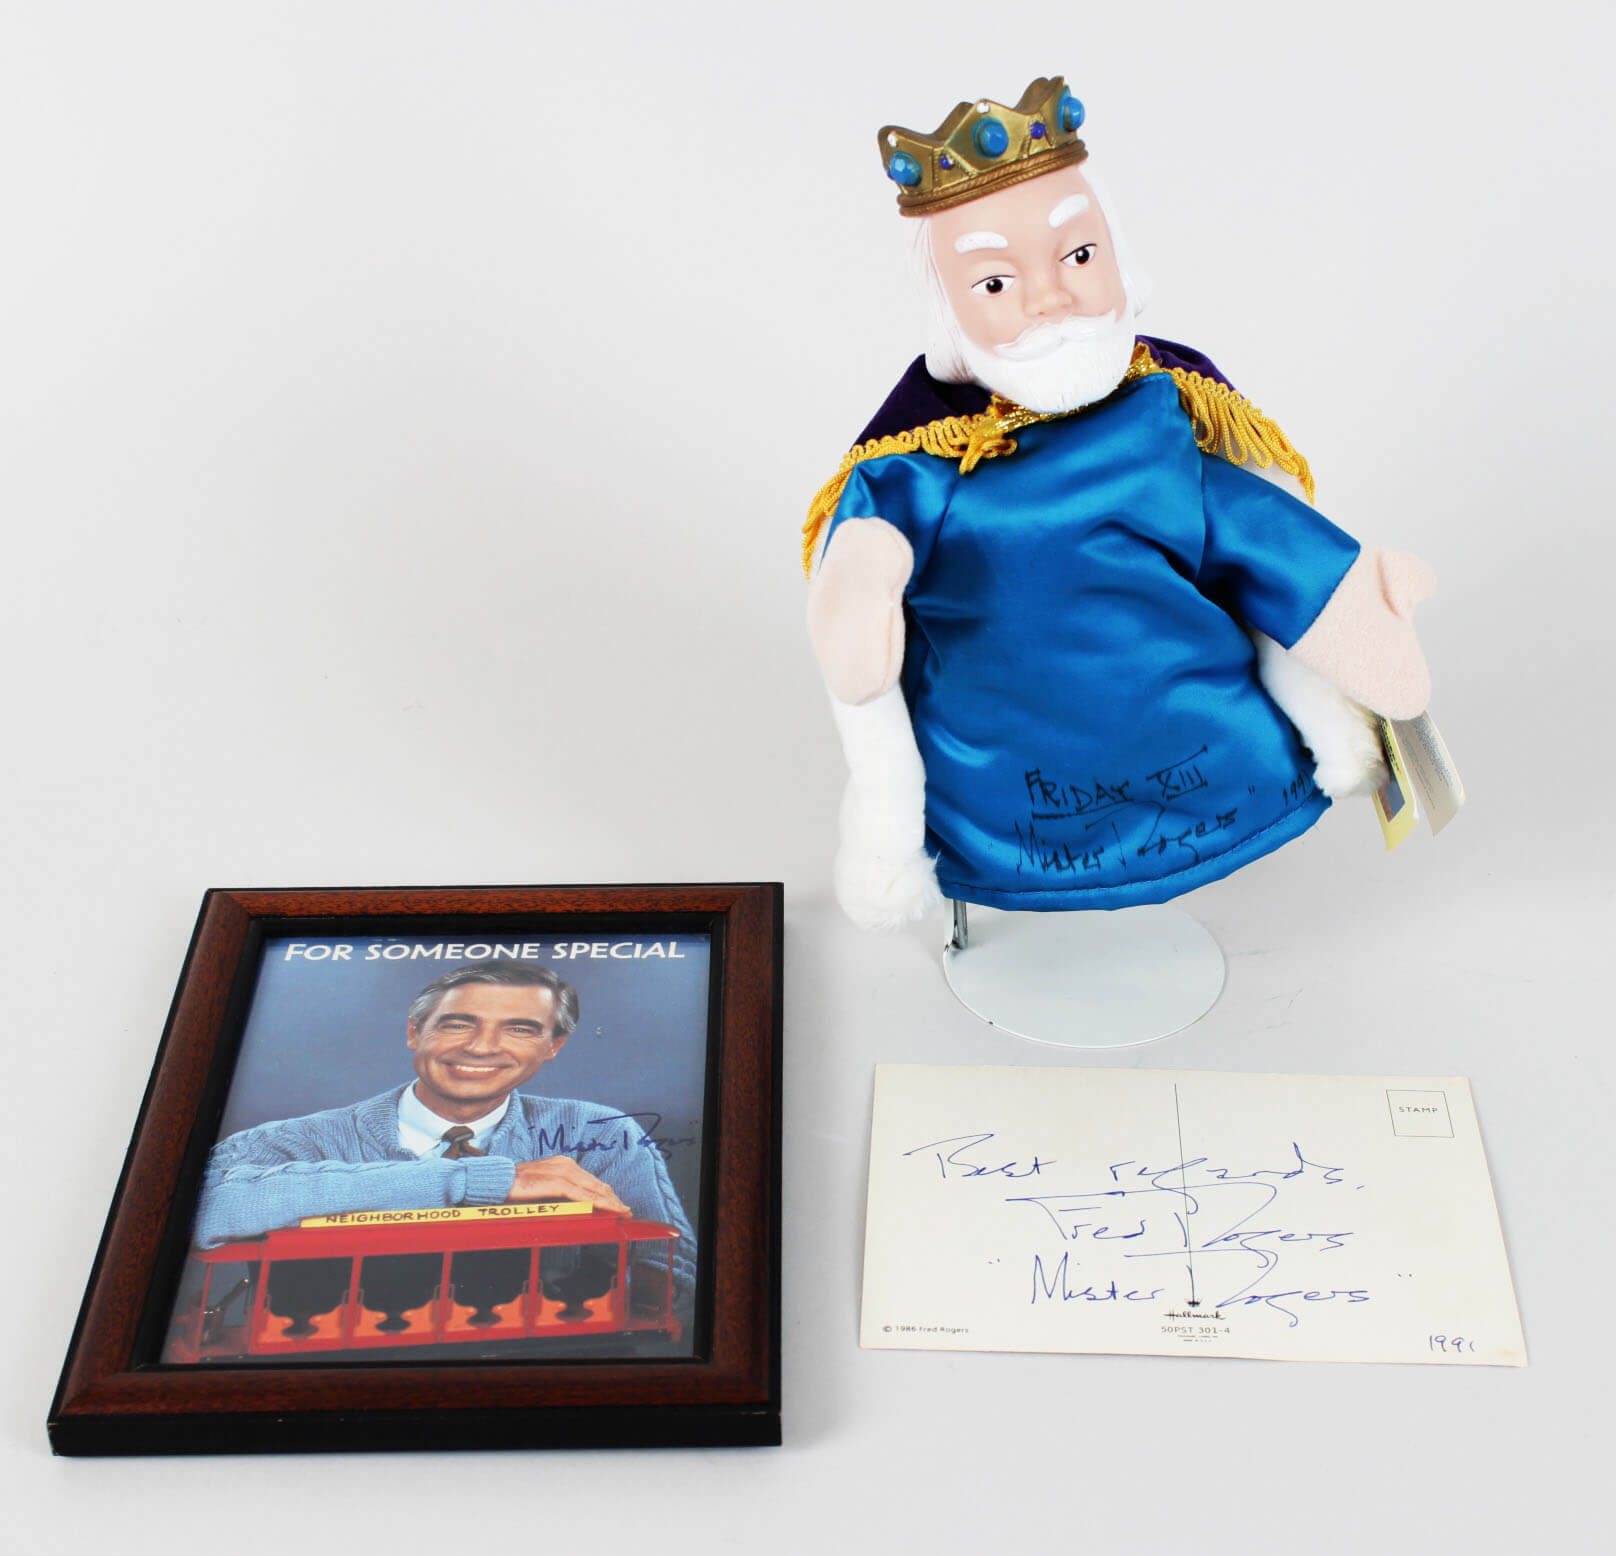 Mr Fred Rogers Signed Inscribed King Friday Puppet Postcard Photo Jsa Memorabilia Expert